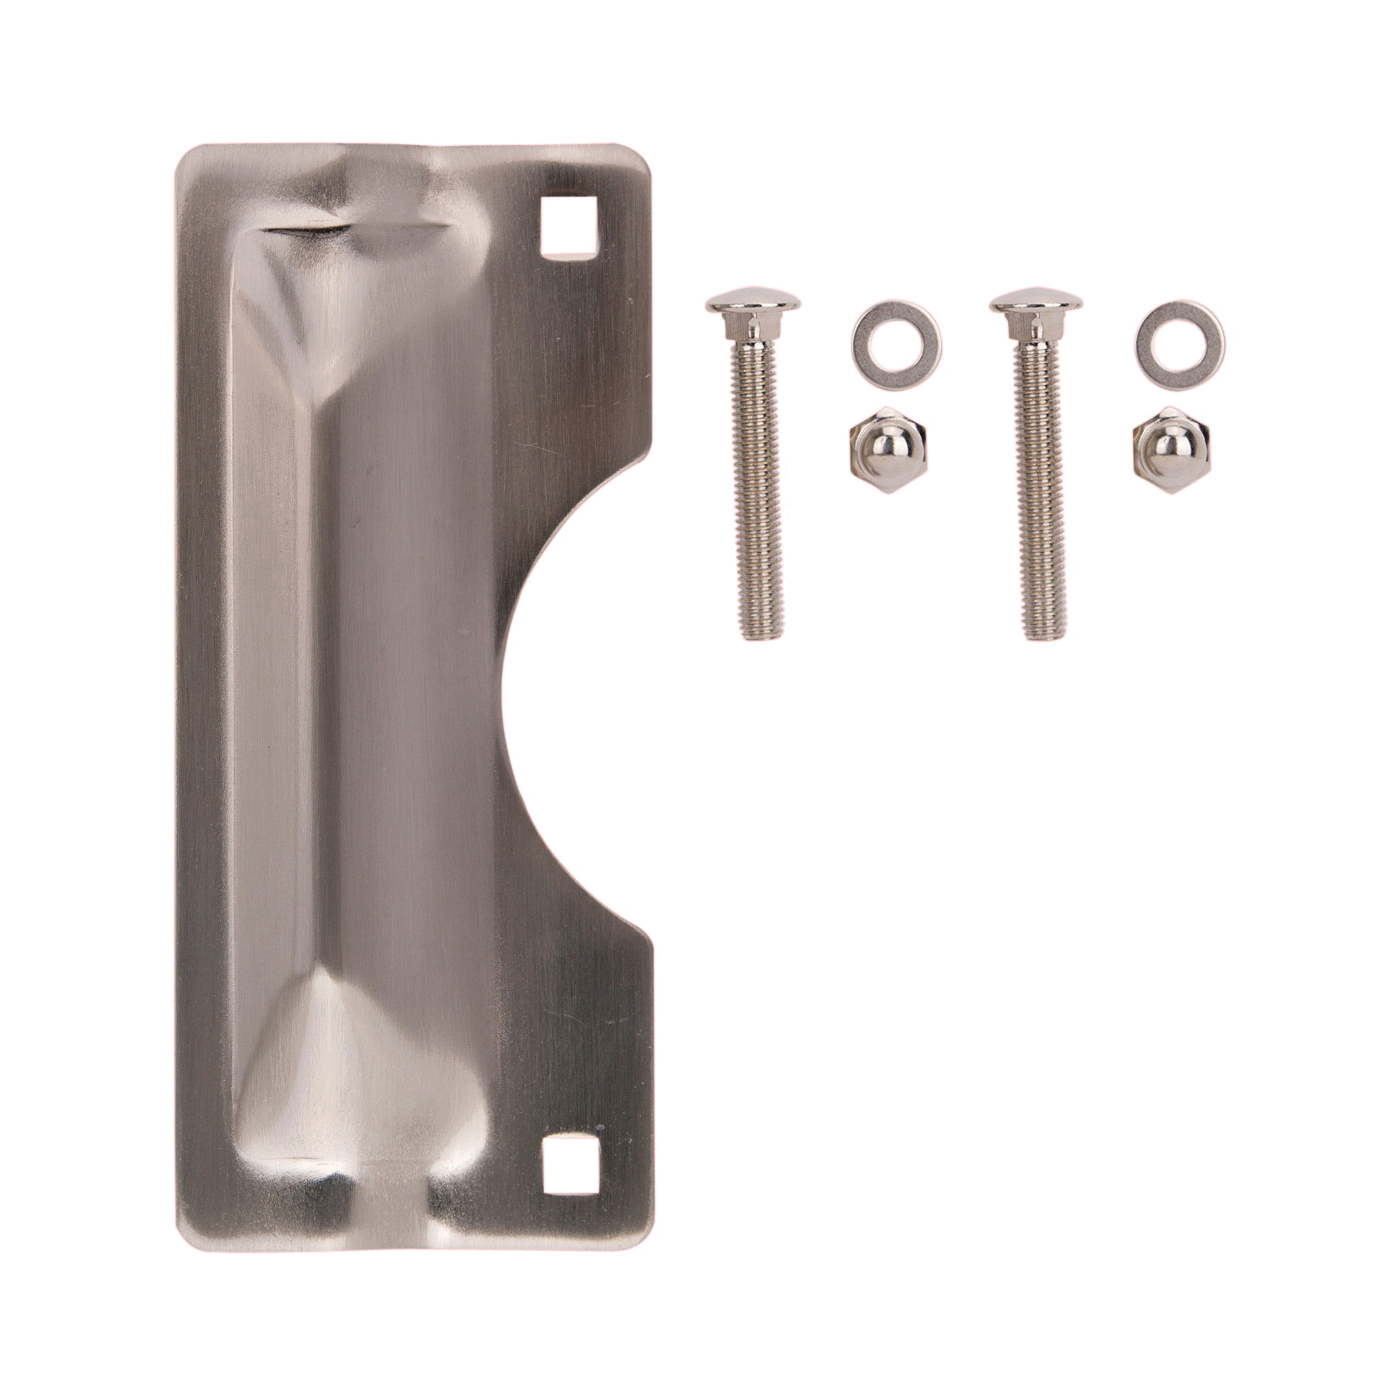 Picture of ProSource HSH-012BN-PS Latch Guard, Steel, Satin Nickel, 7 in H, 3 in W